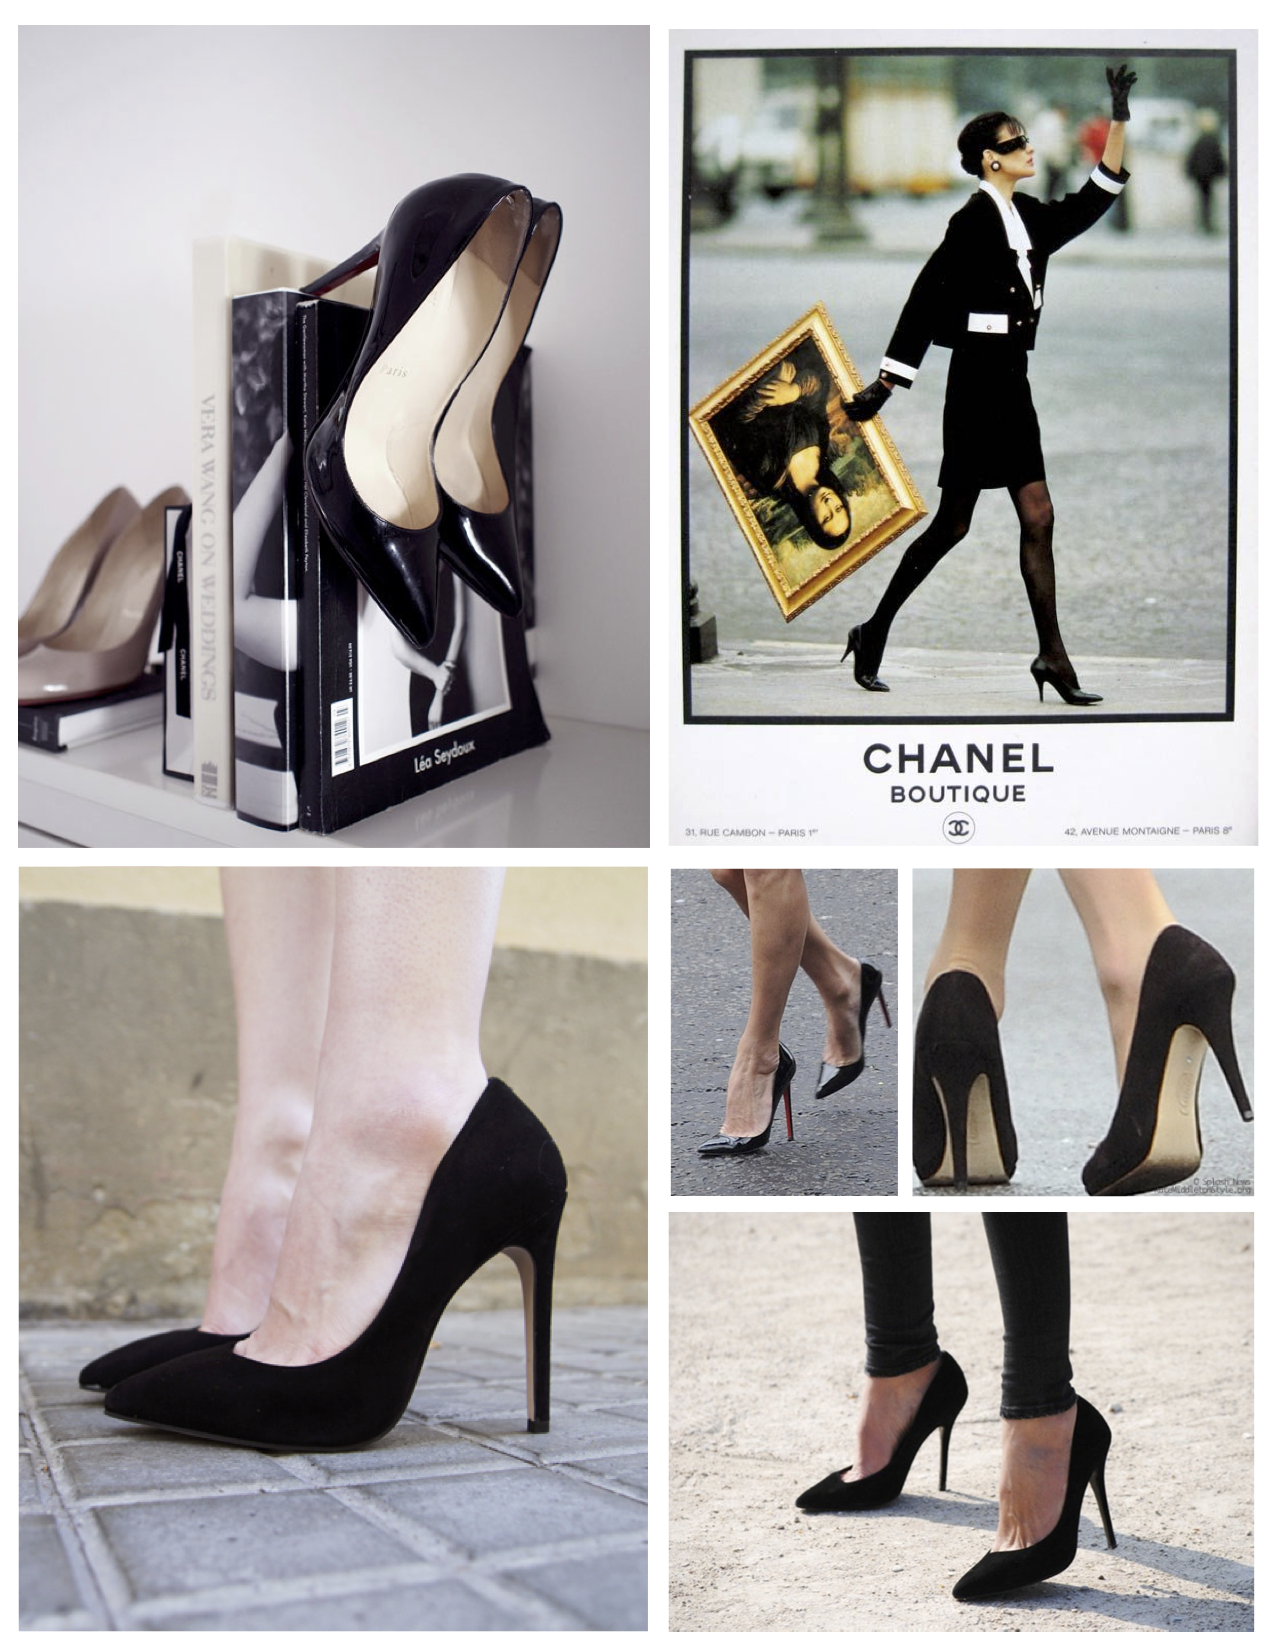 cee88e842a6 ... A High Instep Of Fashionable Style  The Classic Black High Heels